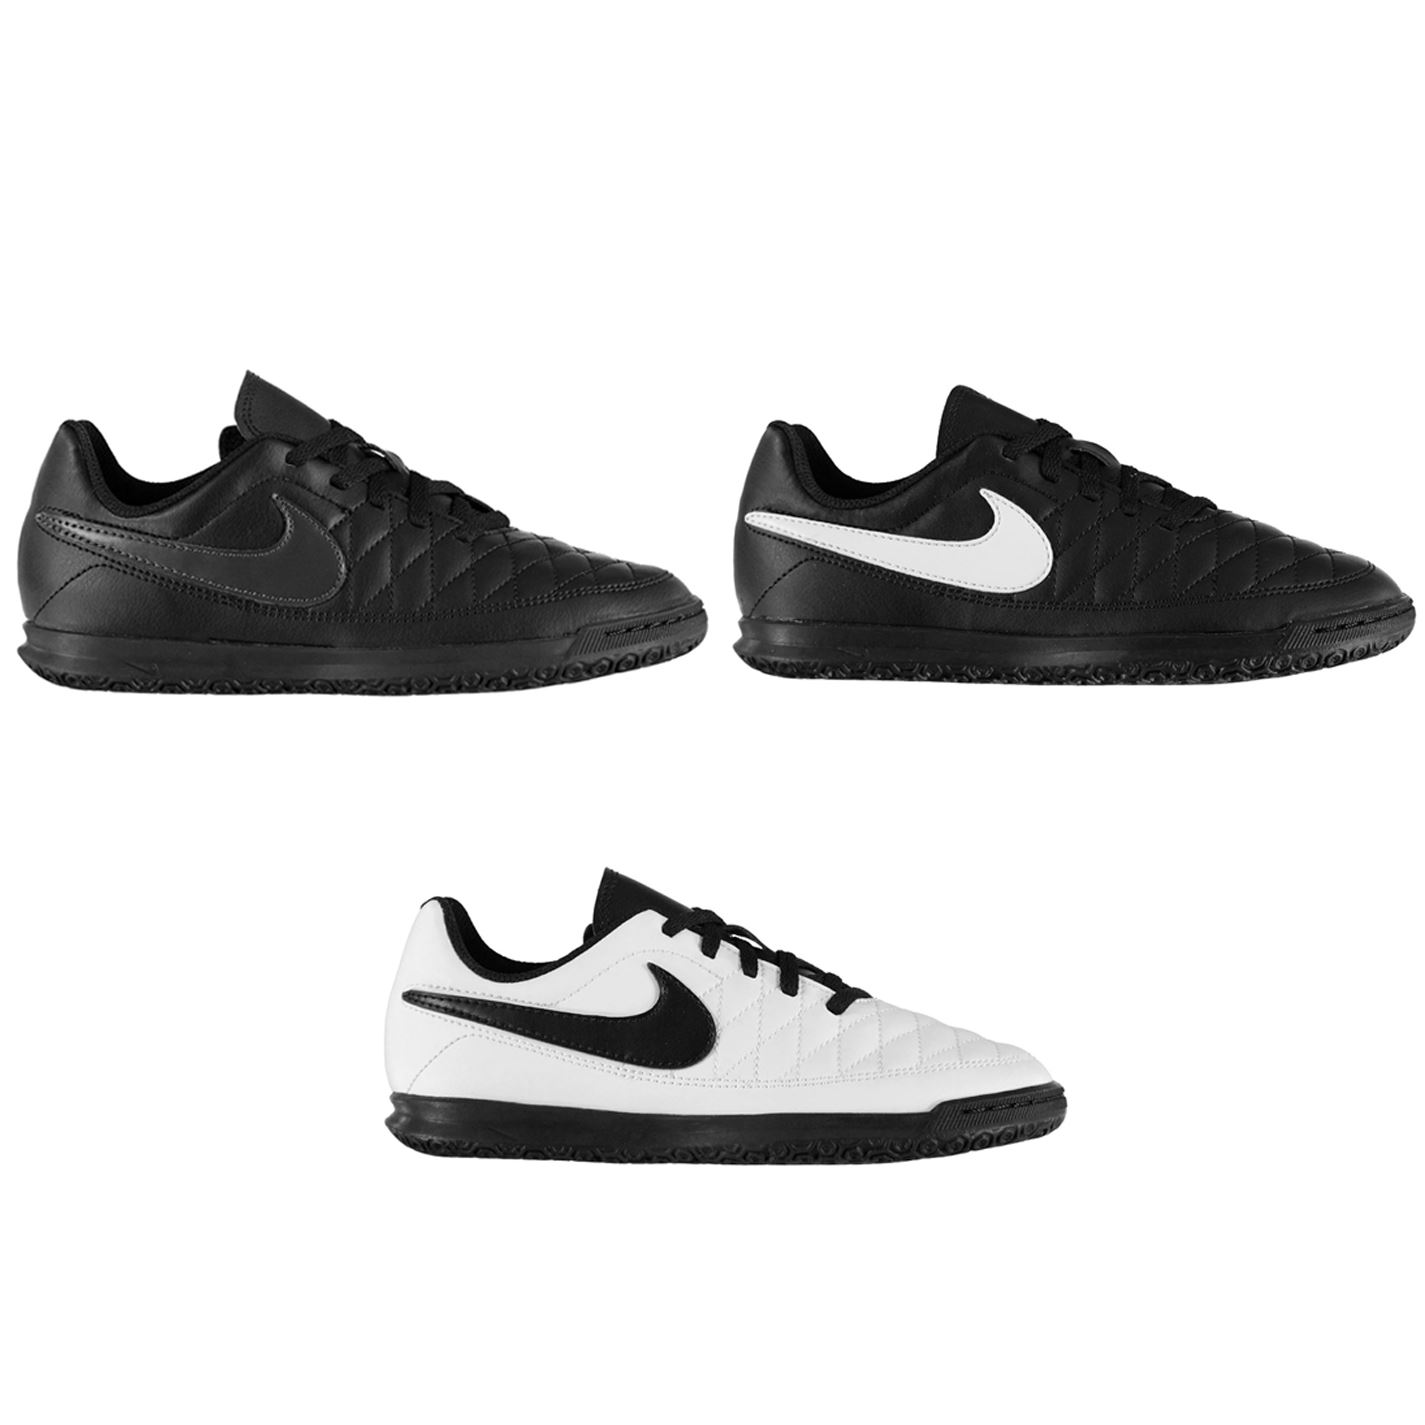 Nike Majestry Indoor Court Football Trainers Childs Soccer Shoes Sneakers d24882623dc